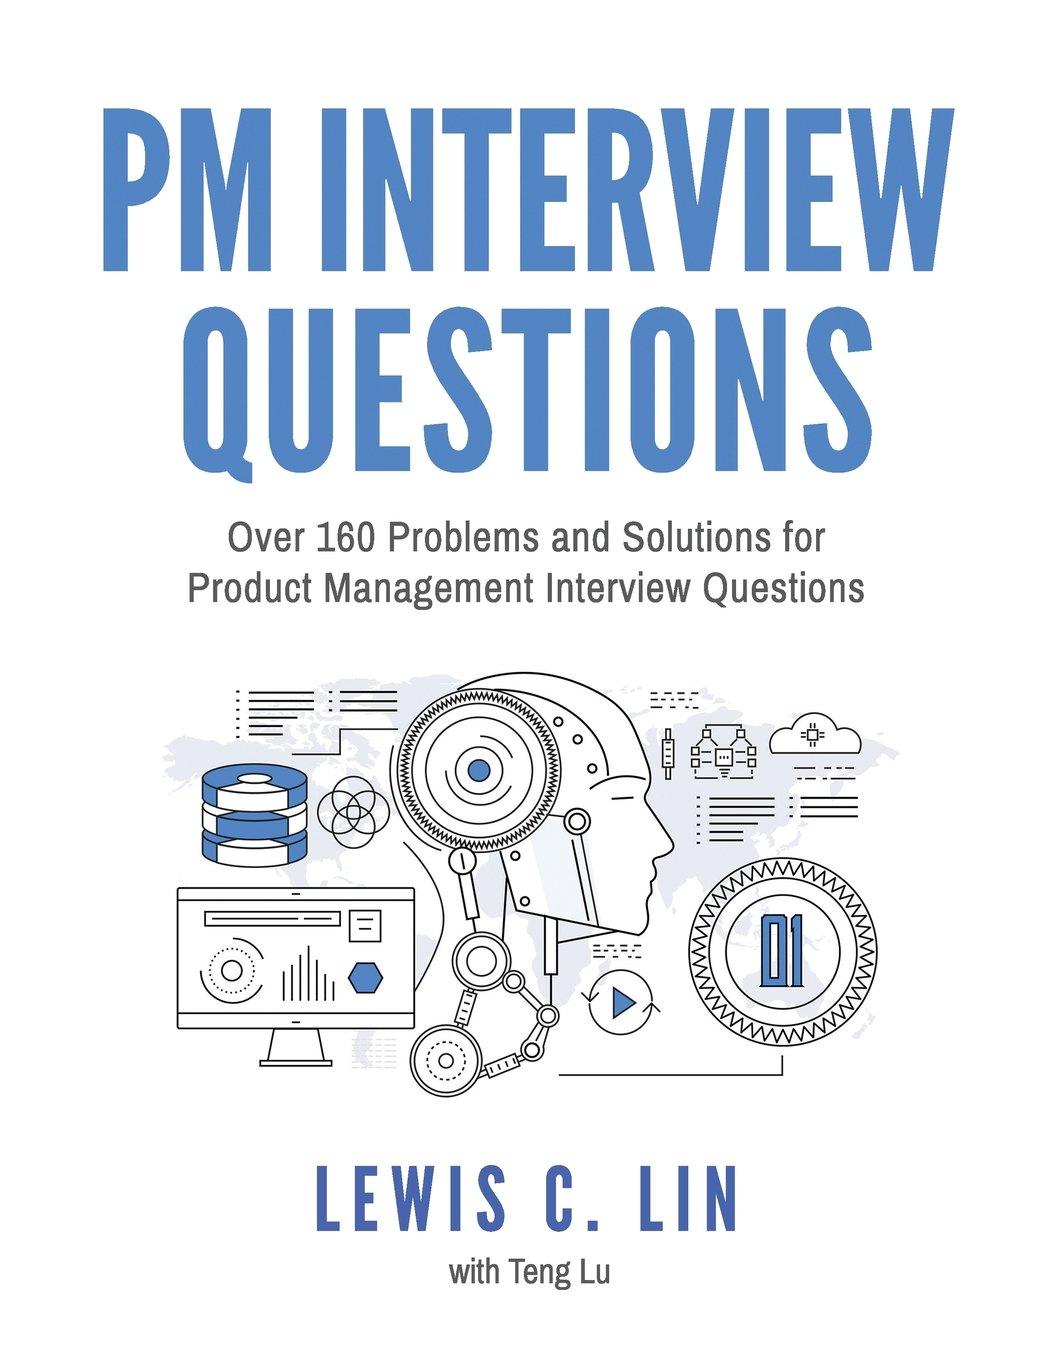 pm interview questions over 160 problems and solutions for pm interview questions over 160 problems and solutions for product management interview questions lewis c lin teng lu 9780998120409 amazon com books